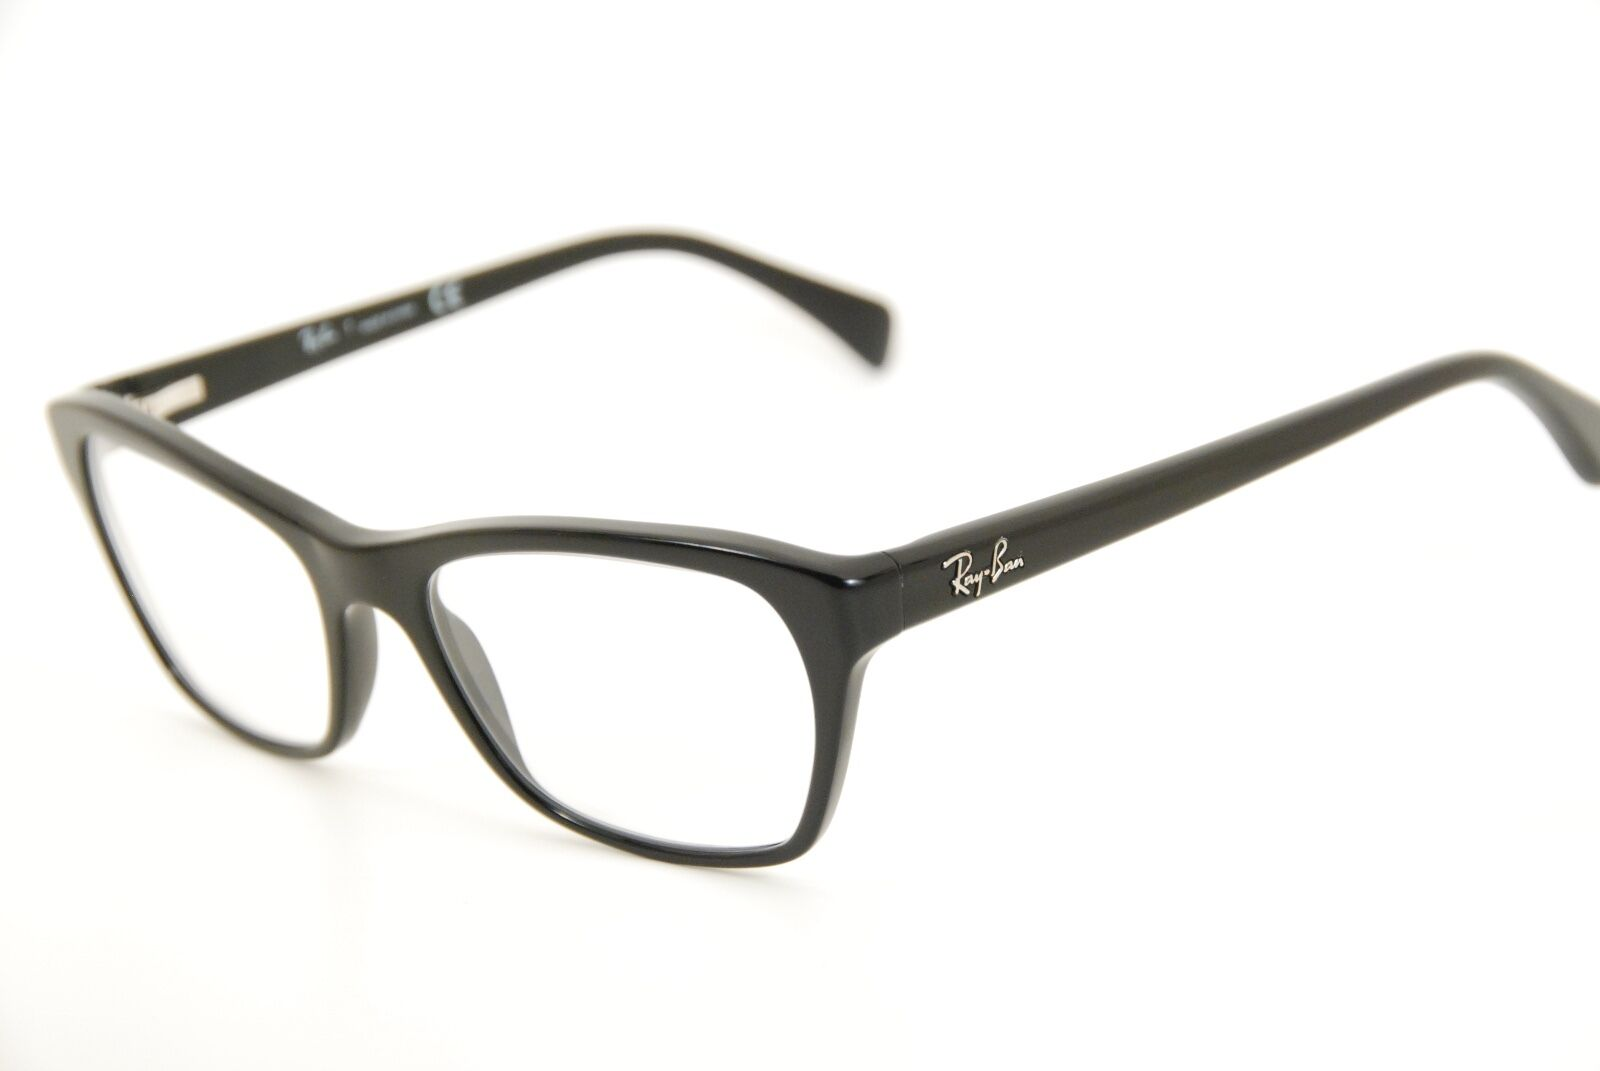 New Authentic Ray Ban RB 5298 2000 Black/Silver 53mm Frames Eyeglasses RX